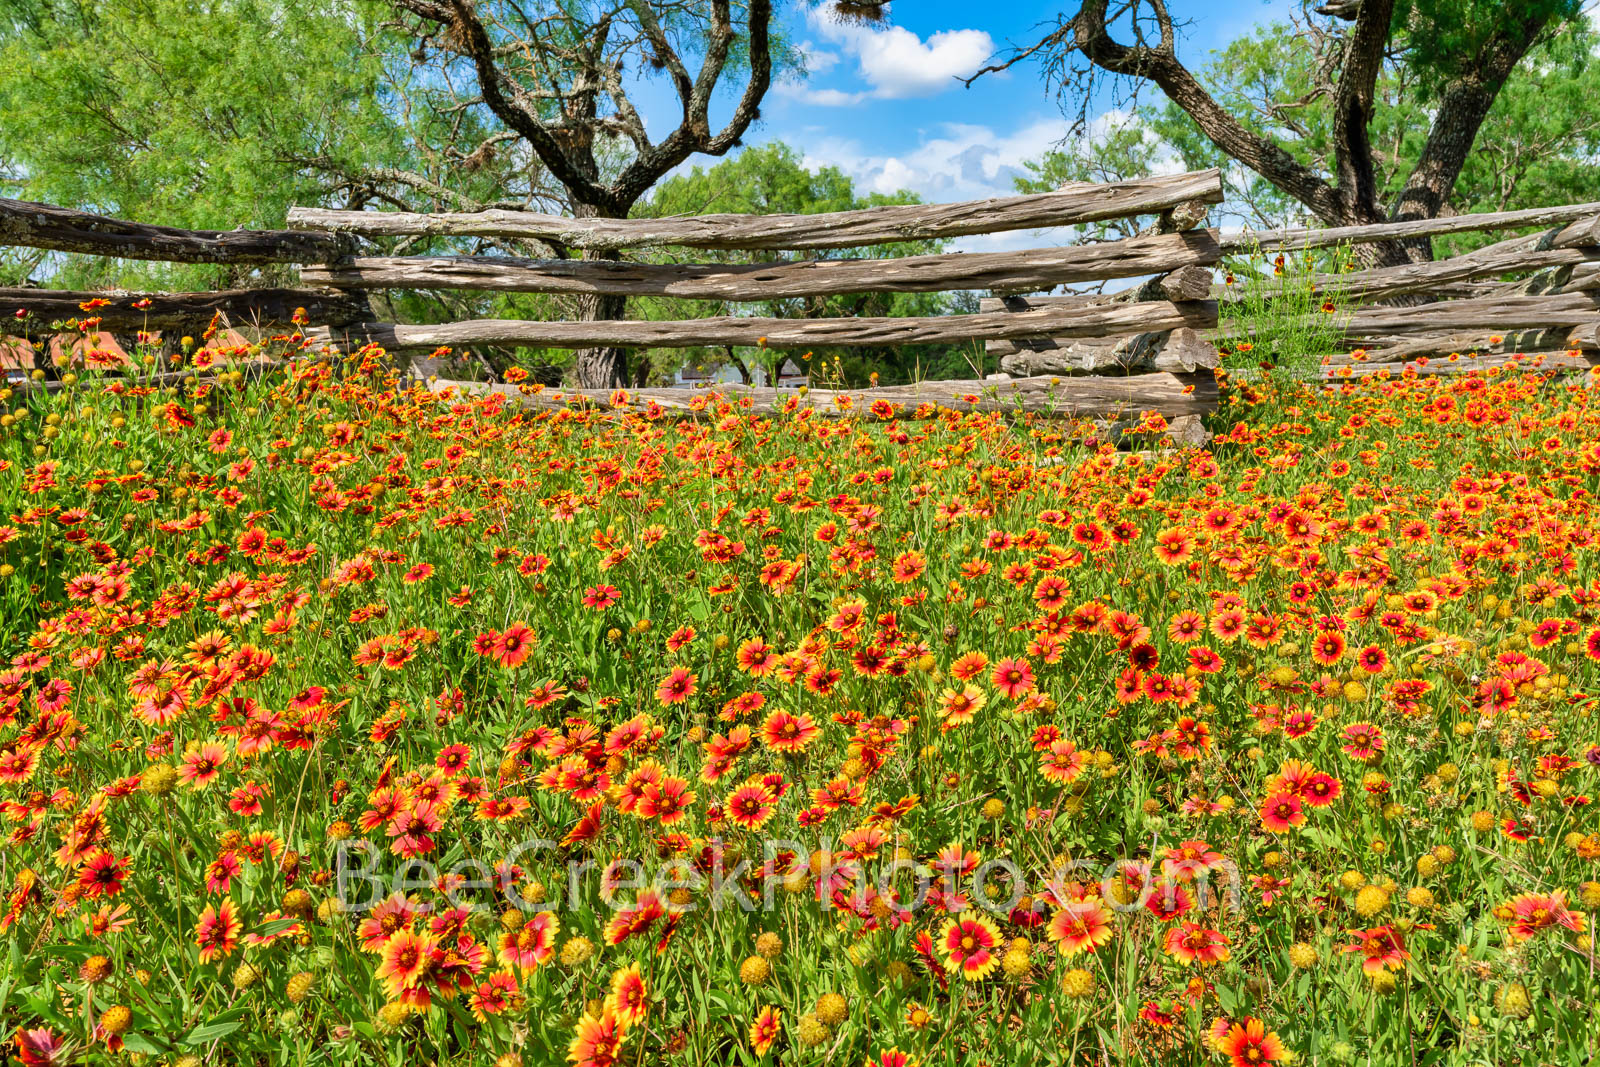 Texas Firewheels Along the Fence - We came across these wonderful firewheel wildlowers, also called indian blankets growing along...